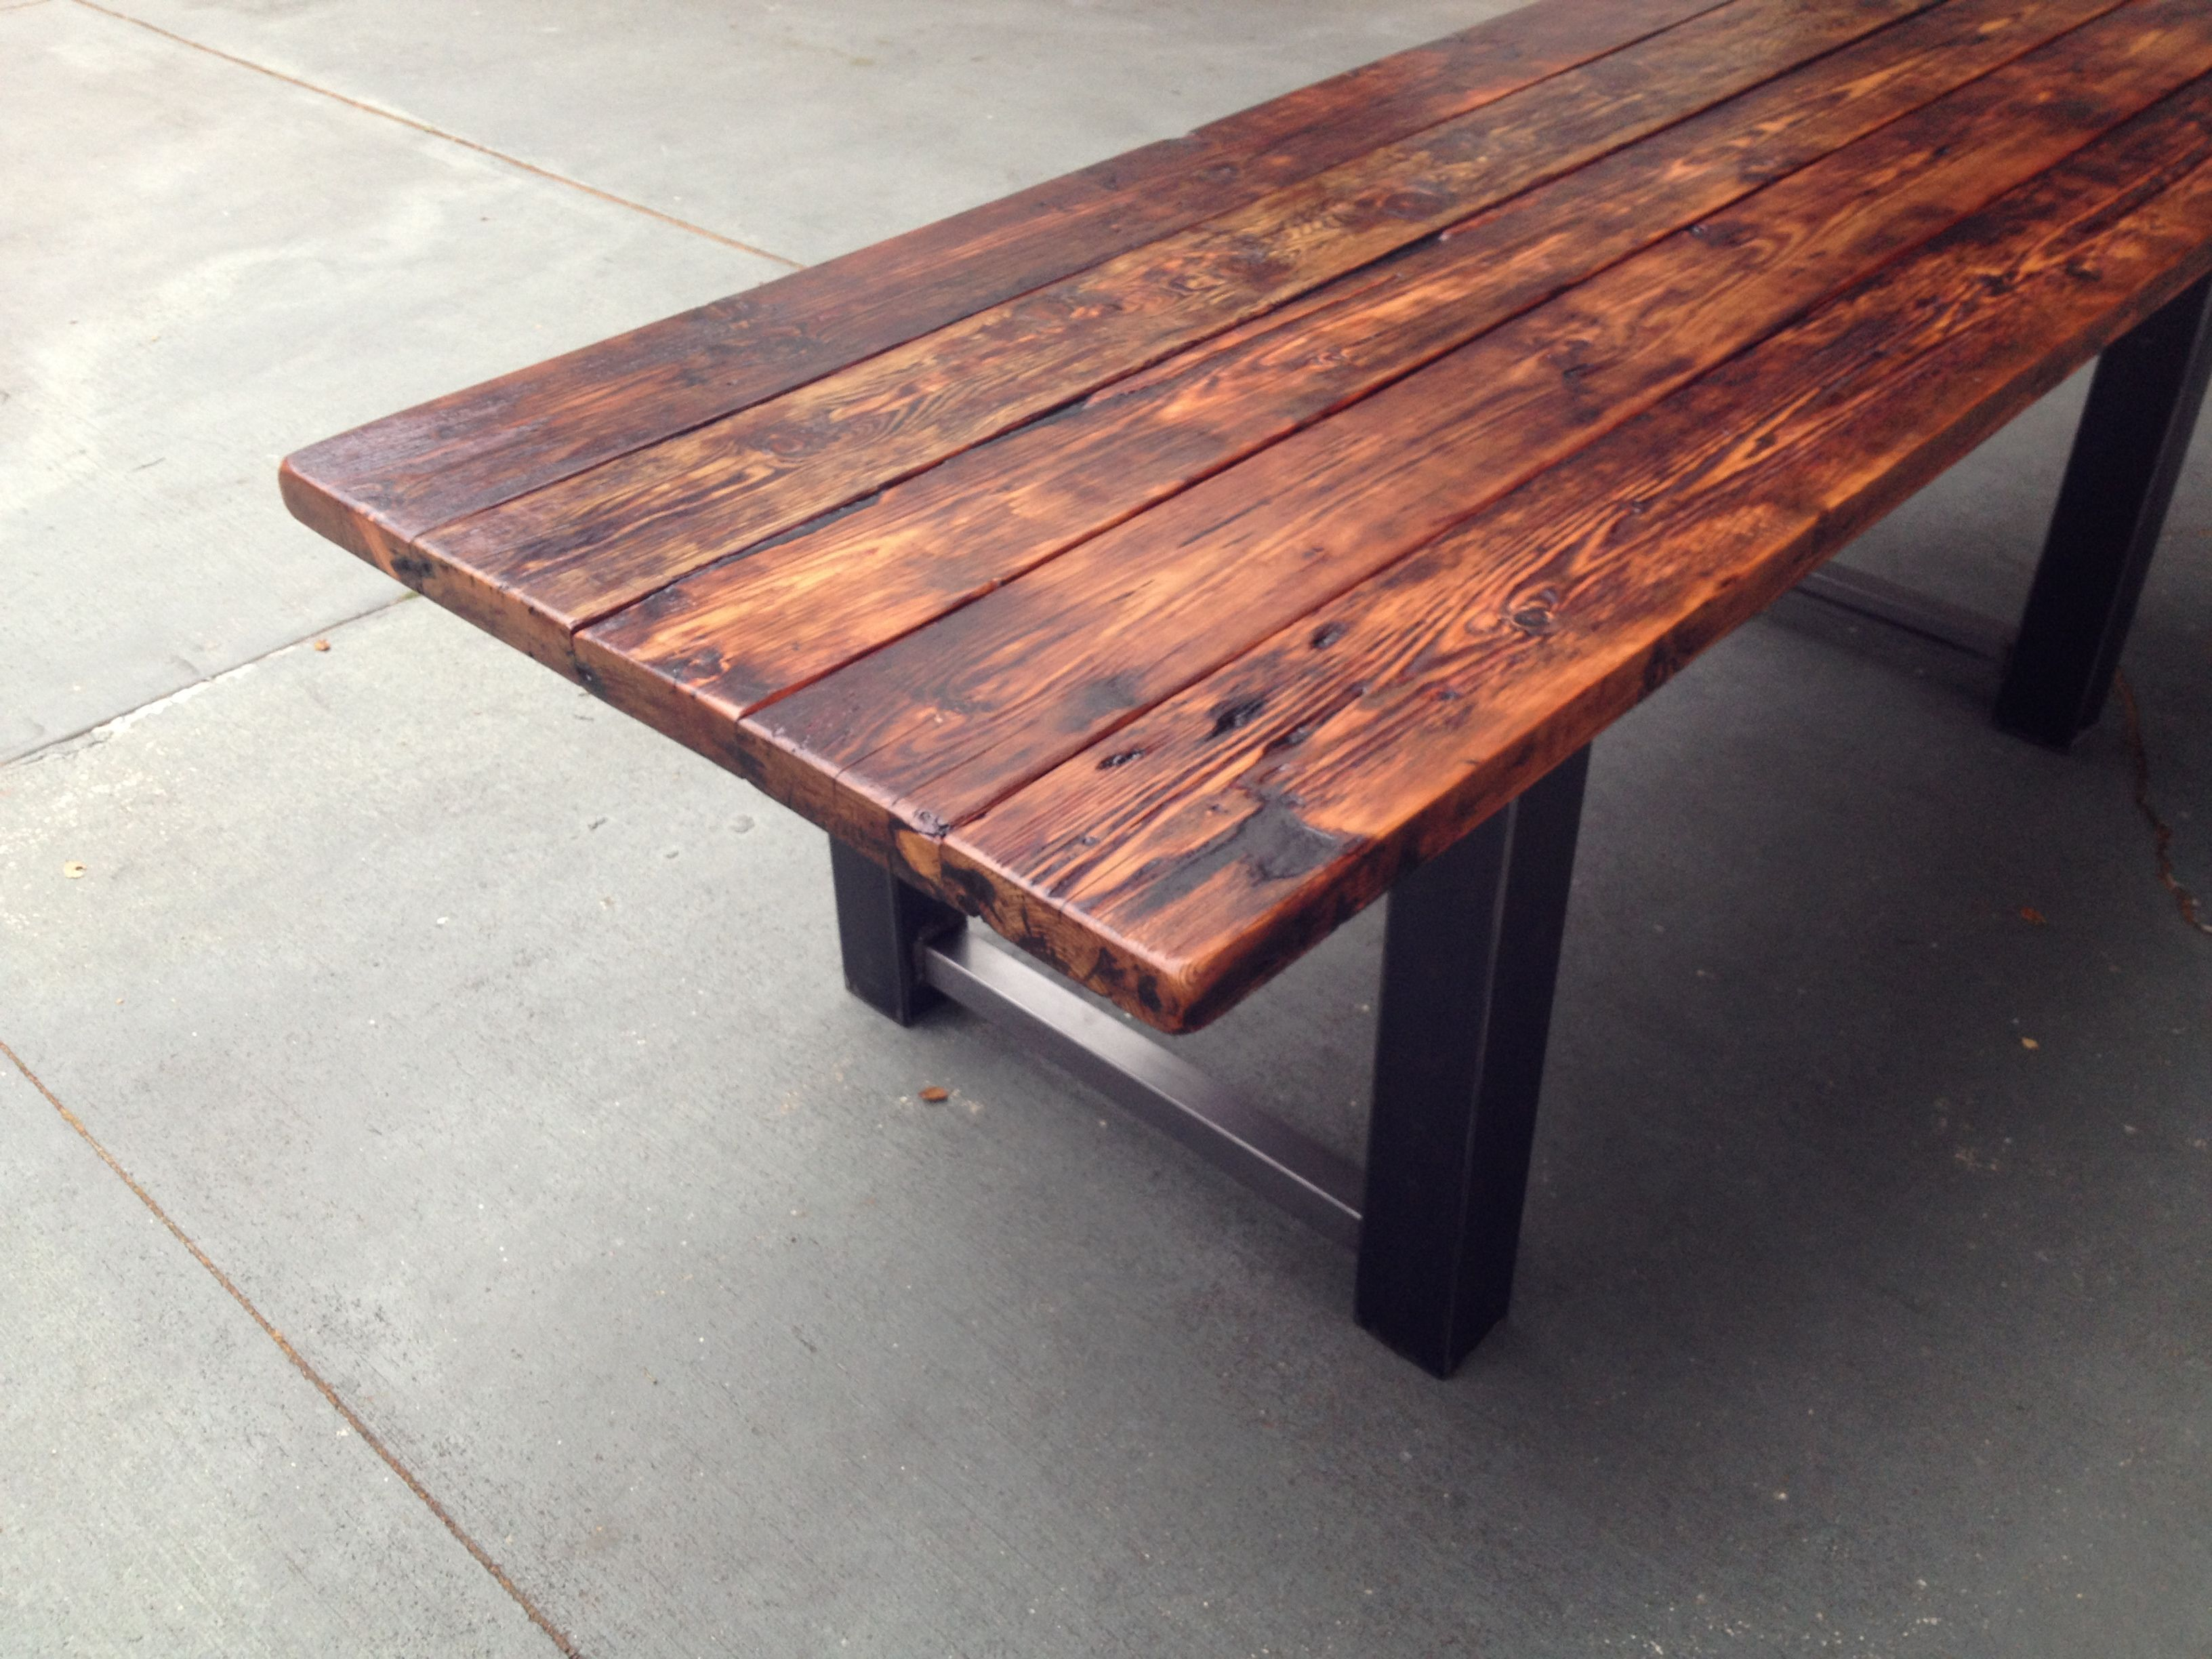 Reclaimed Wood and Metal Dining Table 8. Reclaimed Wood and Metal Dining Table 8   Steel   wood   Pinterest